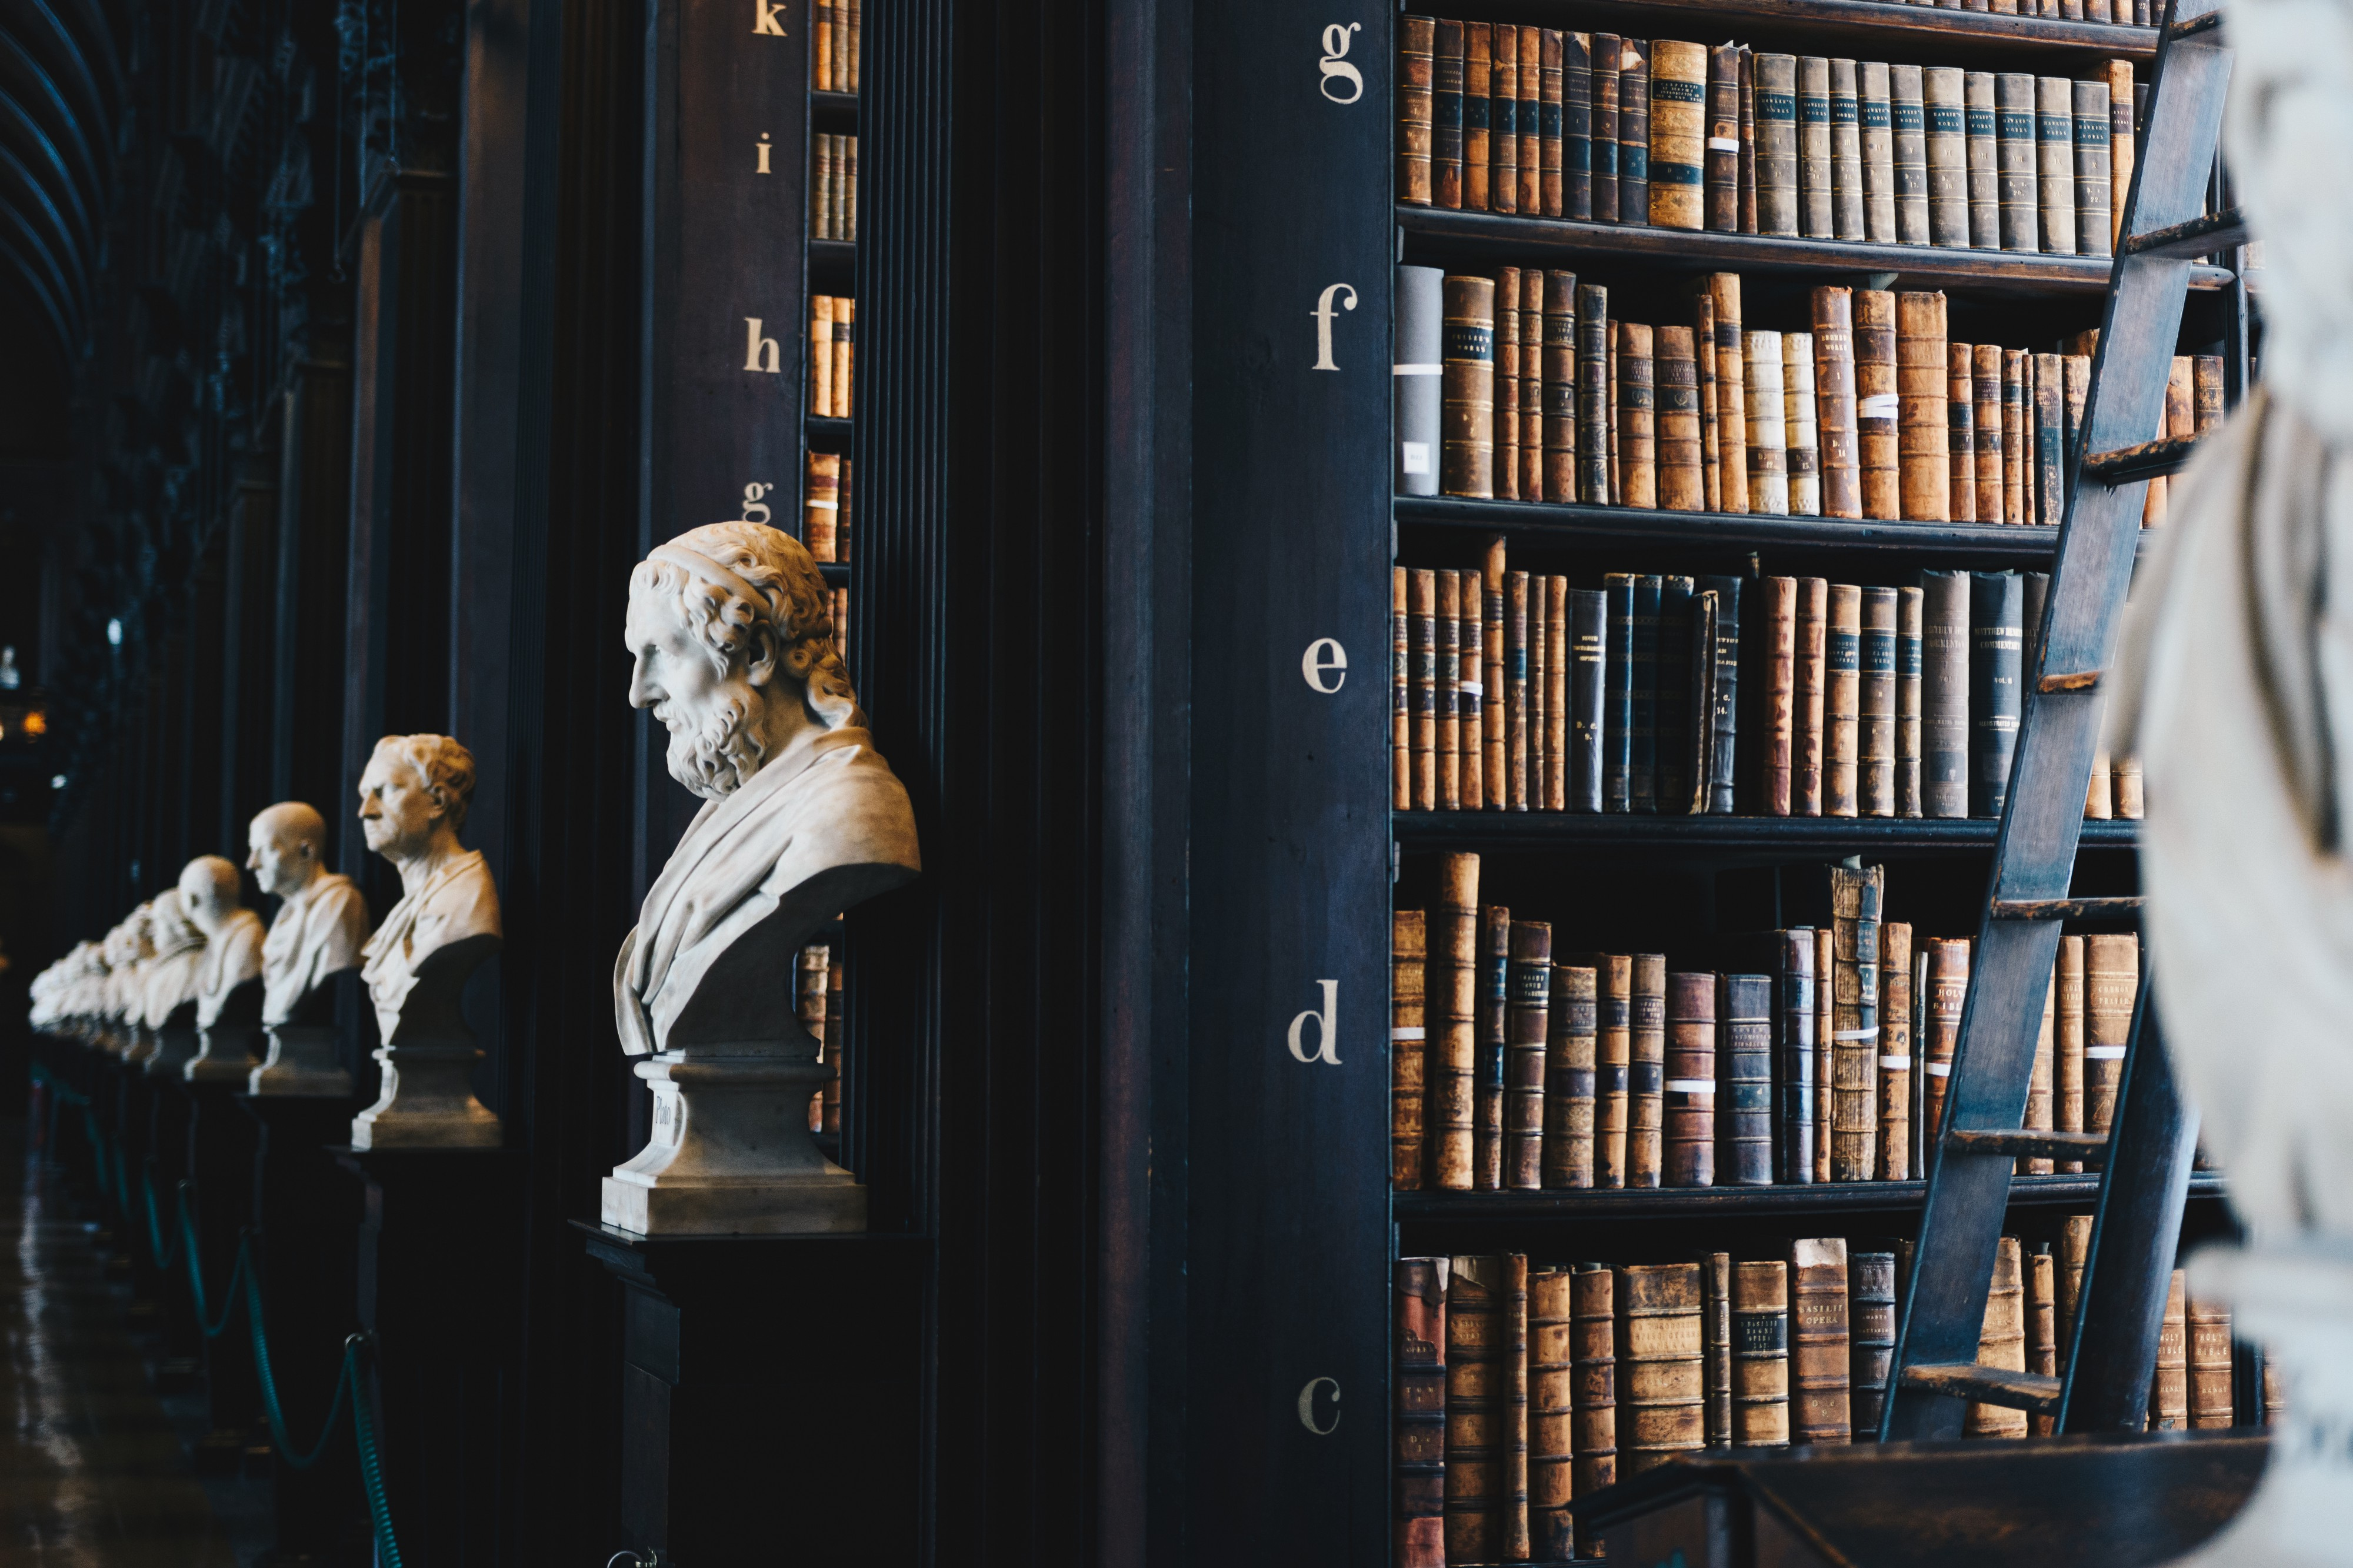 statues of ancient figures in front of bookshelves